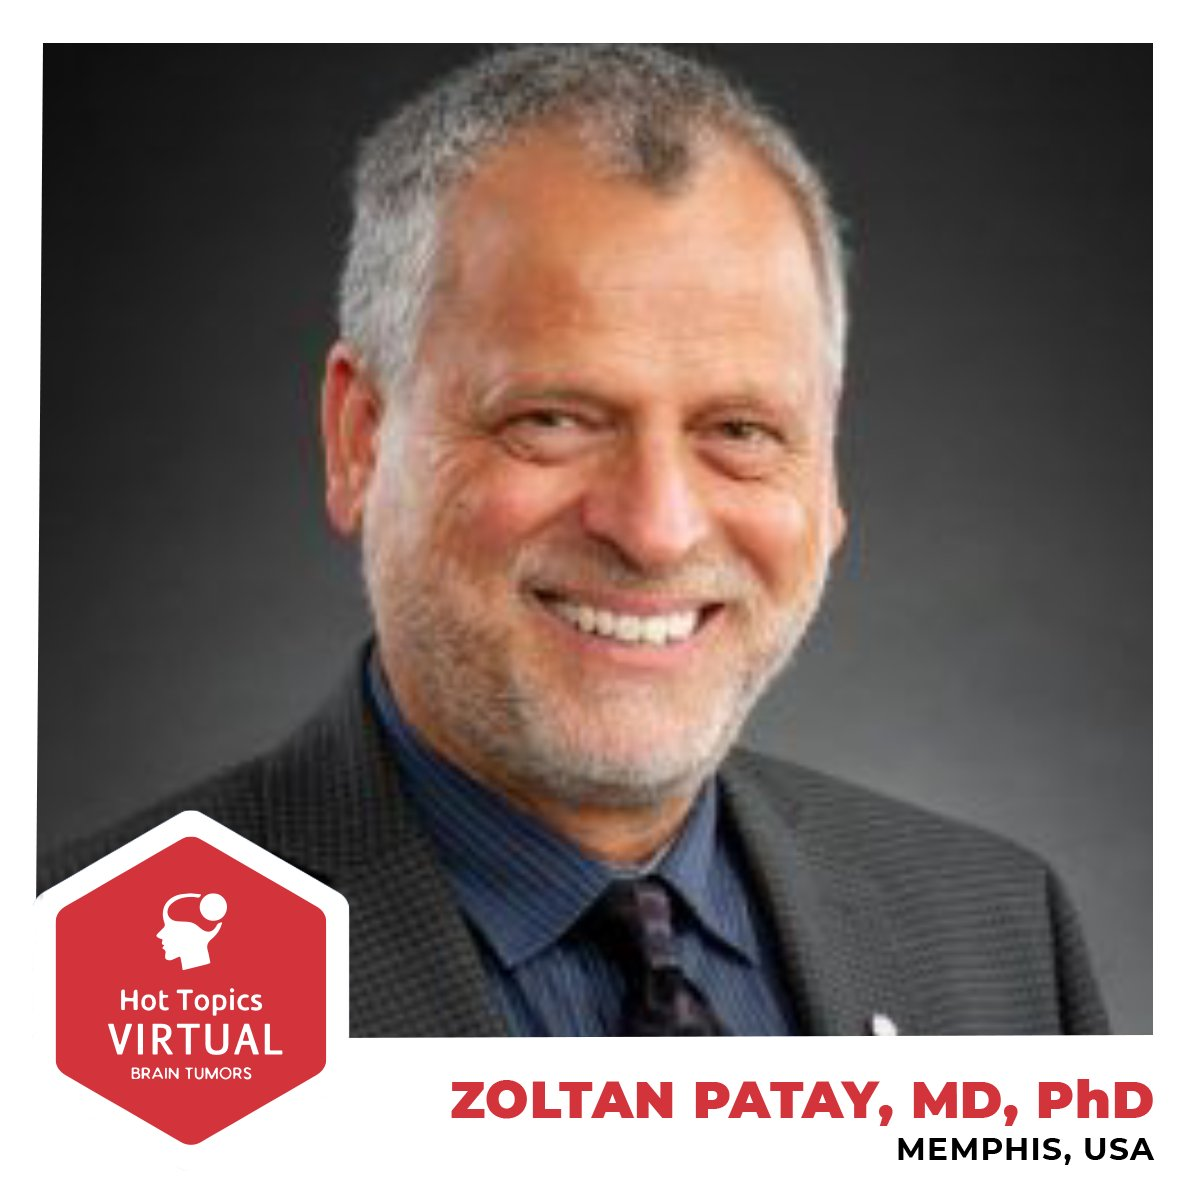 Please join us!  Free webinar with Dr. Zoltan Patay, MD, PhD Imaging of Brainstem Tumors  January 30, 2021 - 11 am EST (New York Time) #ASPNR21 #asnr #neuroradiology  #brain https://t.co/jwpruewUem https://t.co/4udXvIWlUz